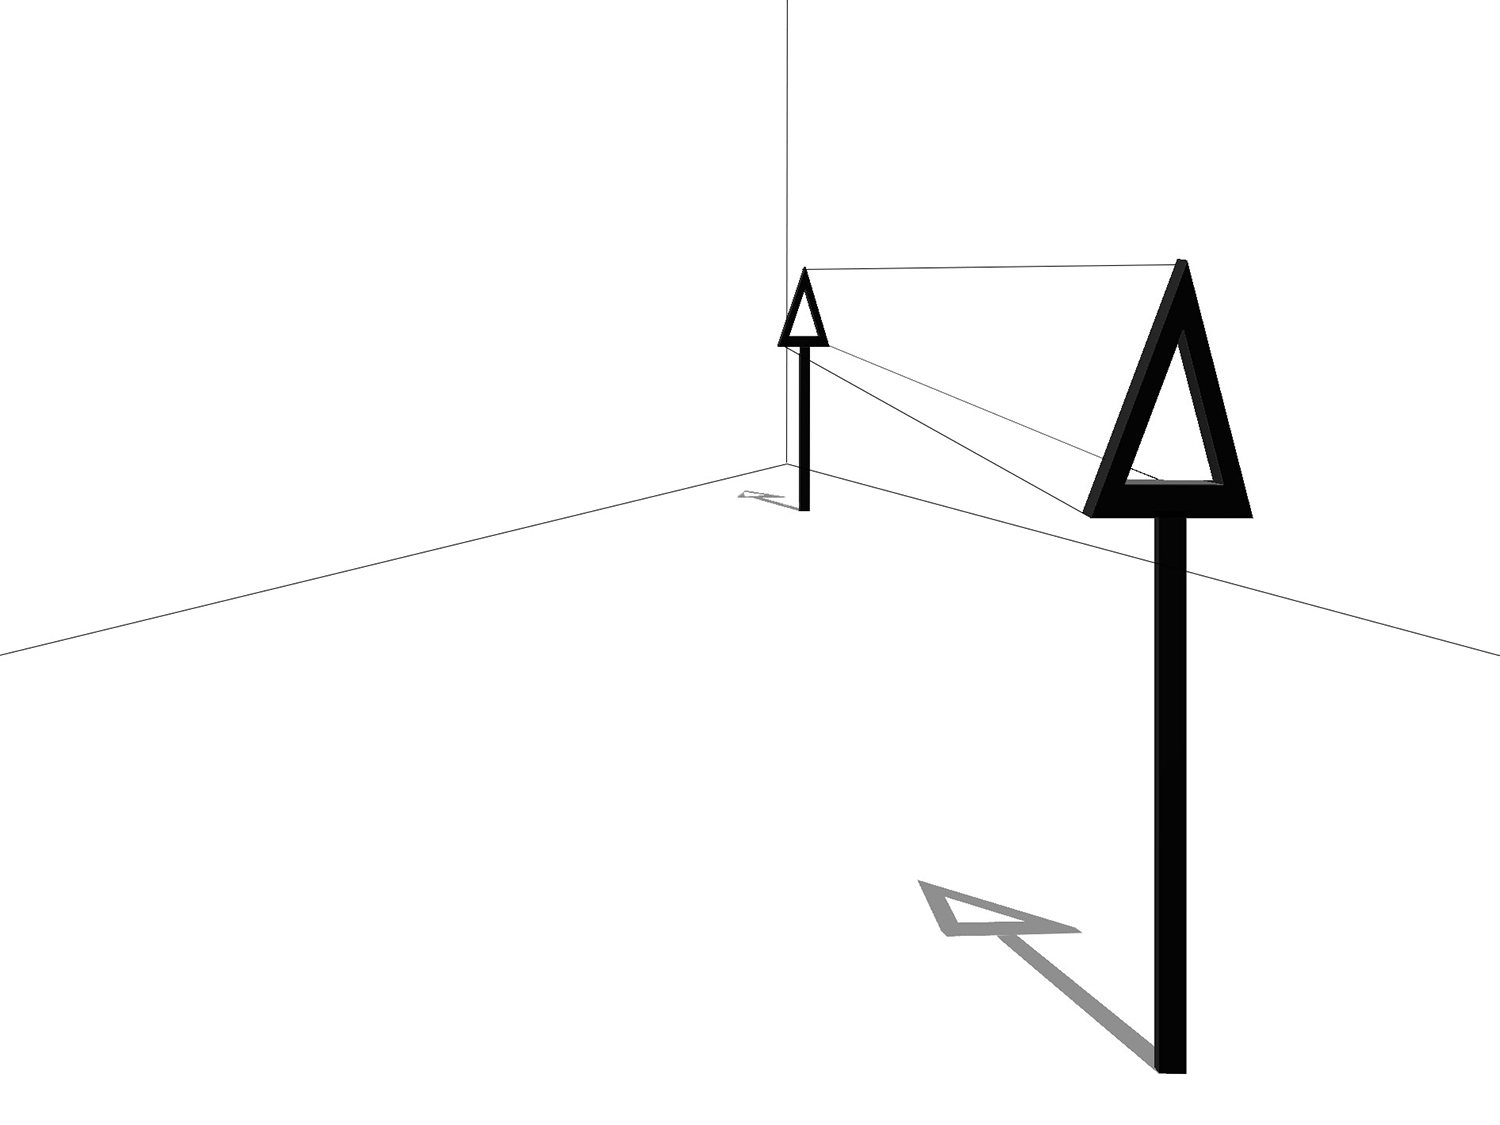 Digital illustration of a sculpture. Two triangles on a post with lines stretching between in a white corner space.